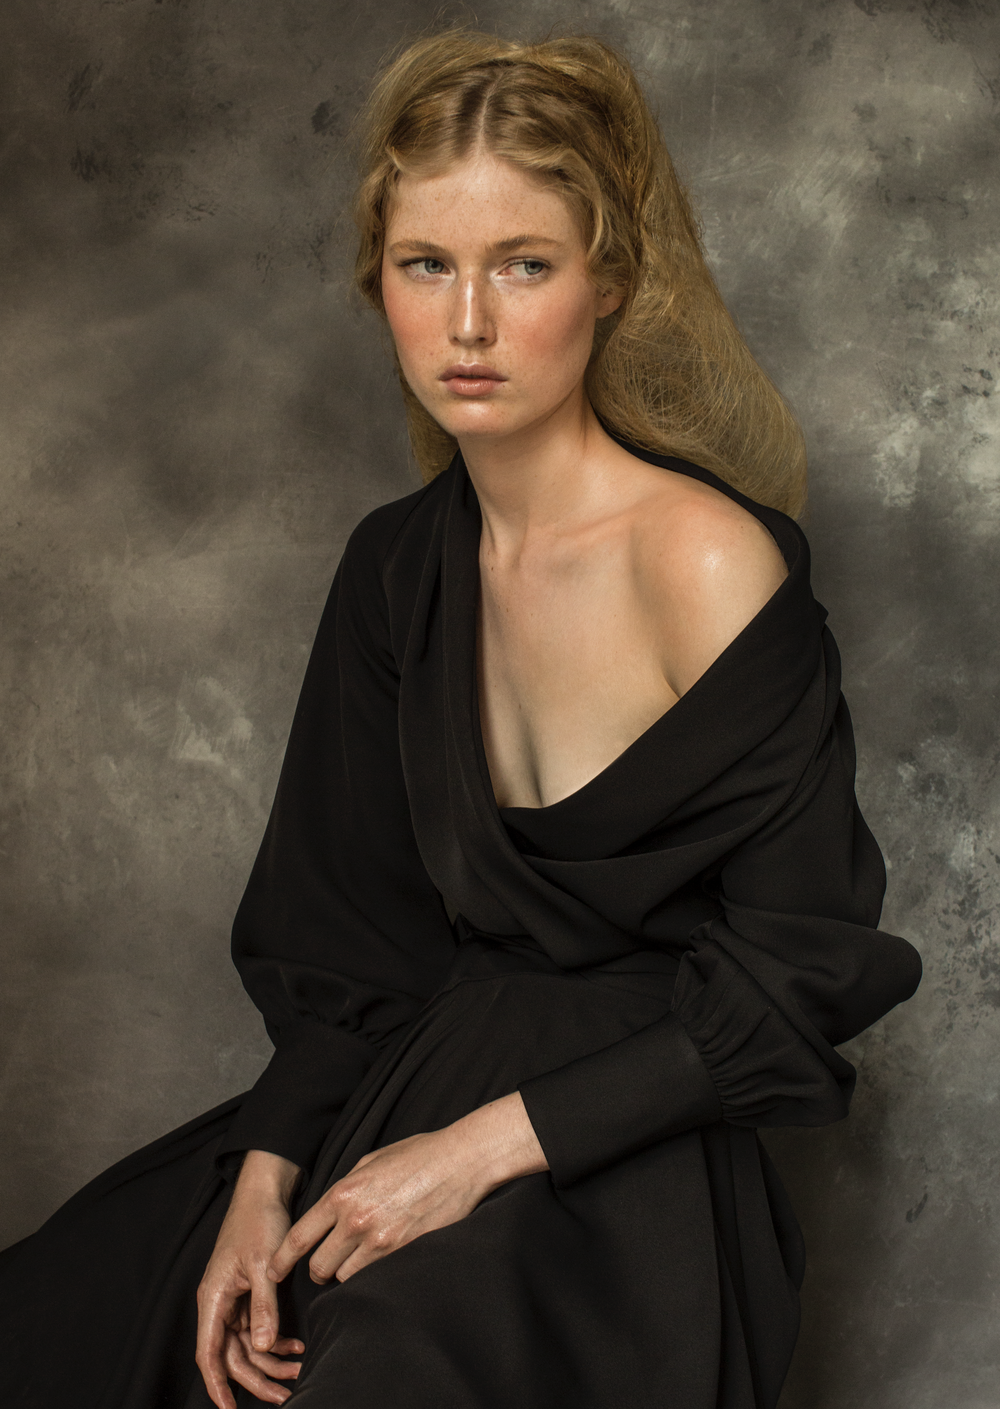 Long Sleeve Wrap Dress- GERALDINE LUSTGARTEN SS18, Photographer Andres Oyuela Stylist David Chicaeme- Make up Eric Vosburg- Hair Akihisa Yamaguchi- Agency Wilhelmina Models